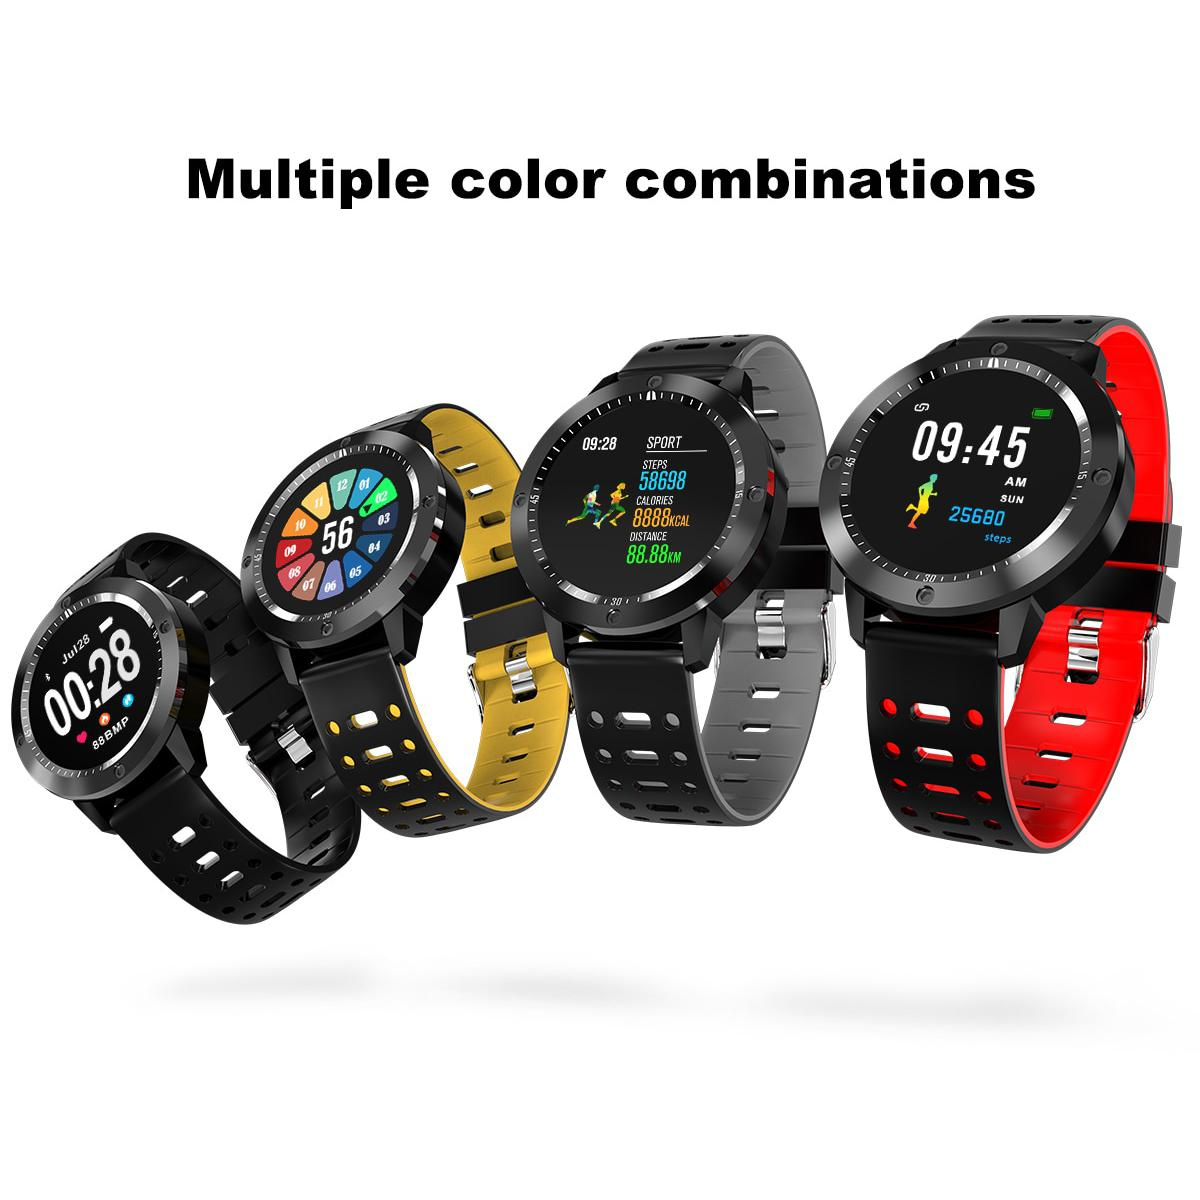 Accessori HiTech Smart Watch